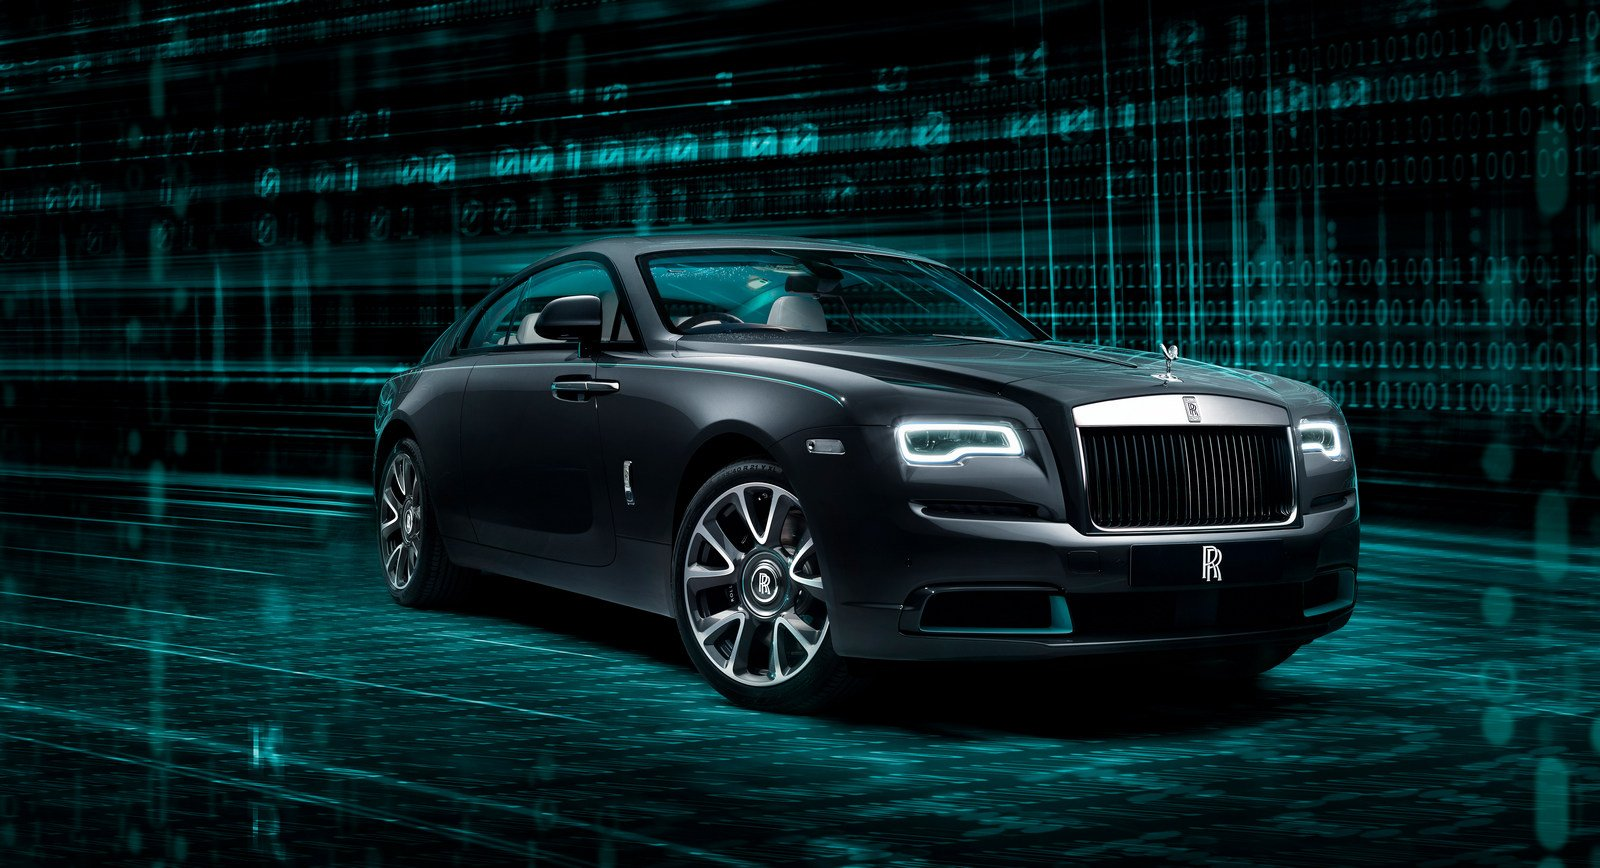 If Morpheus would ever ride a limousine it would be this special edition Rolls-Royce Wraith Kryptos